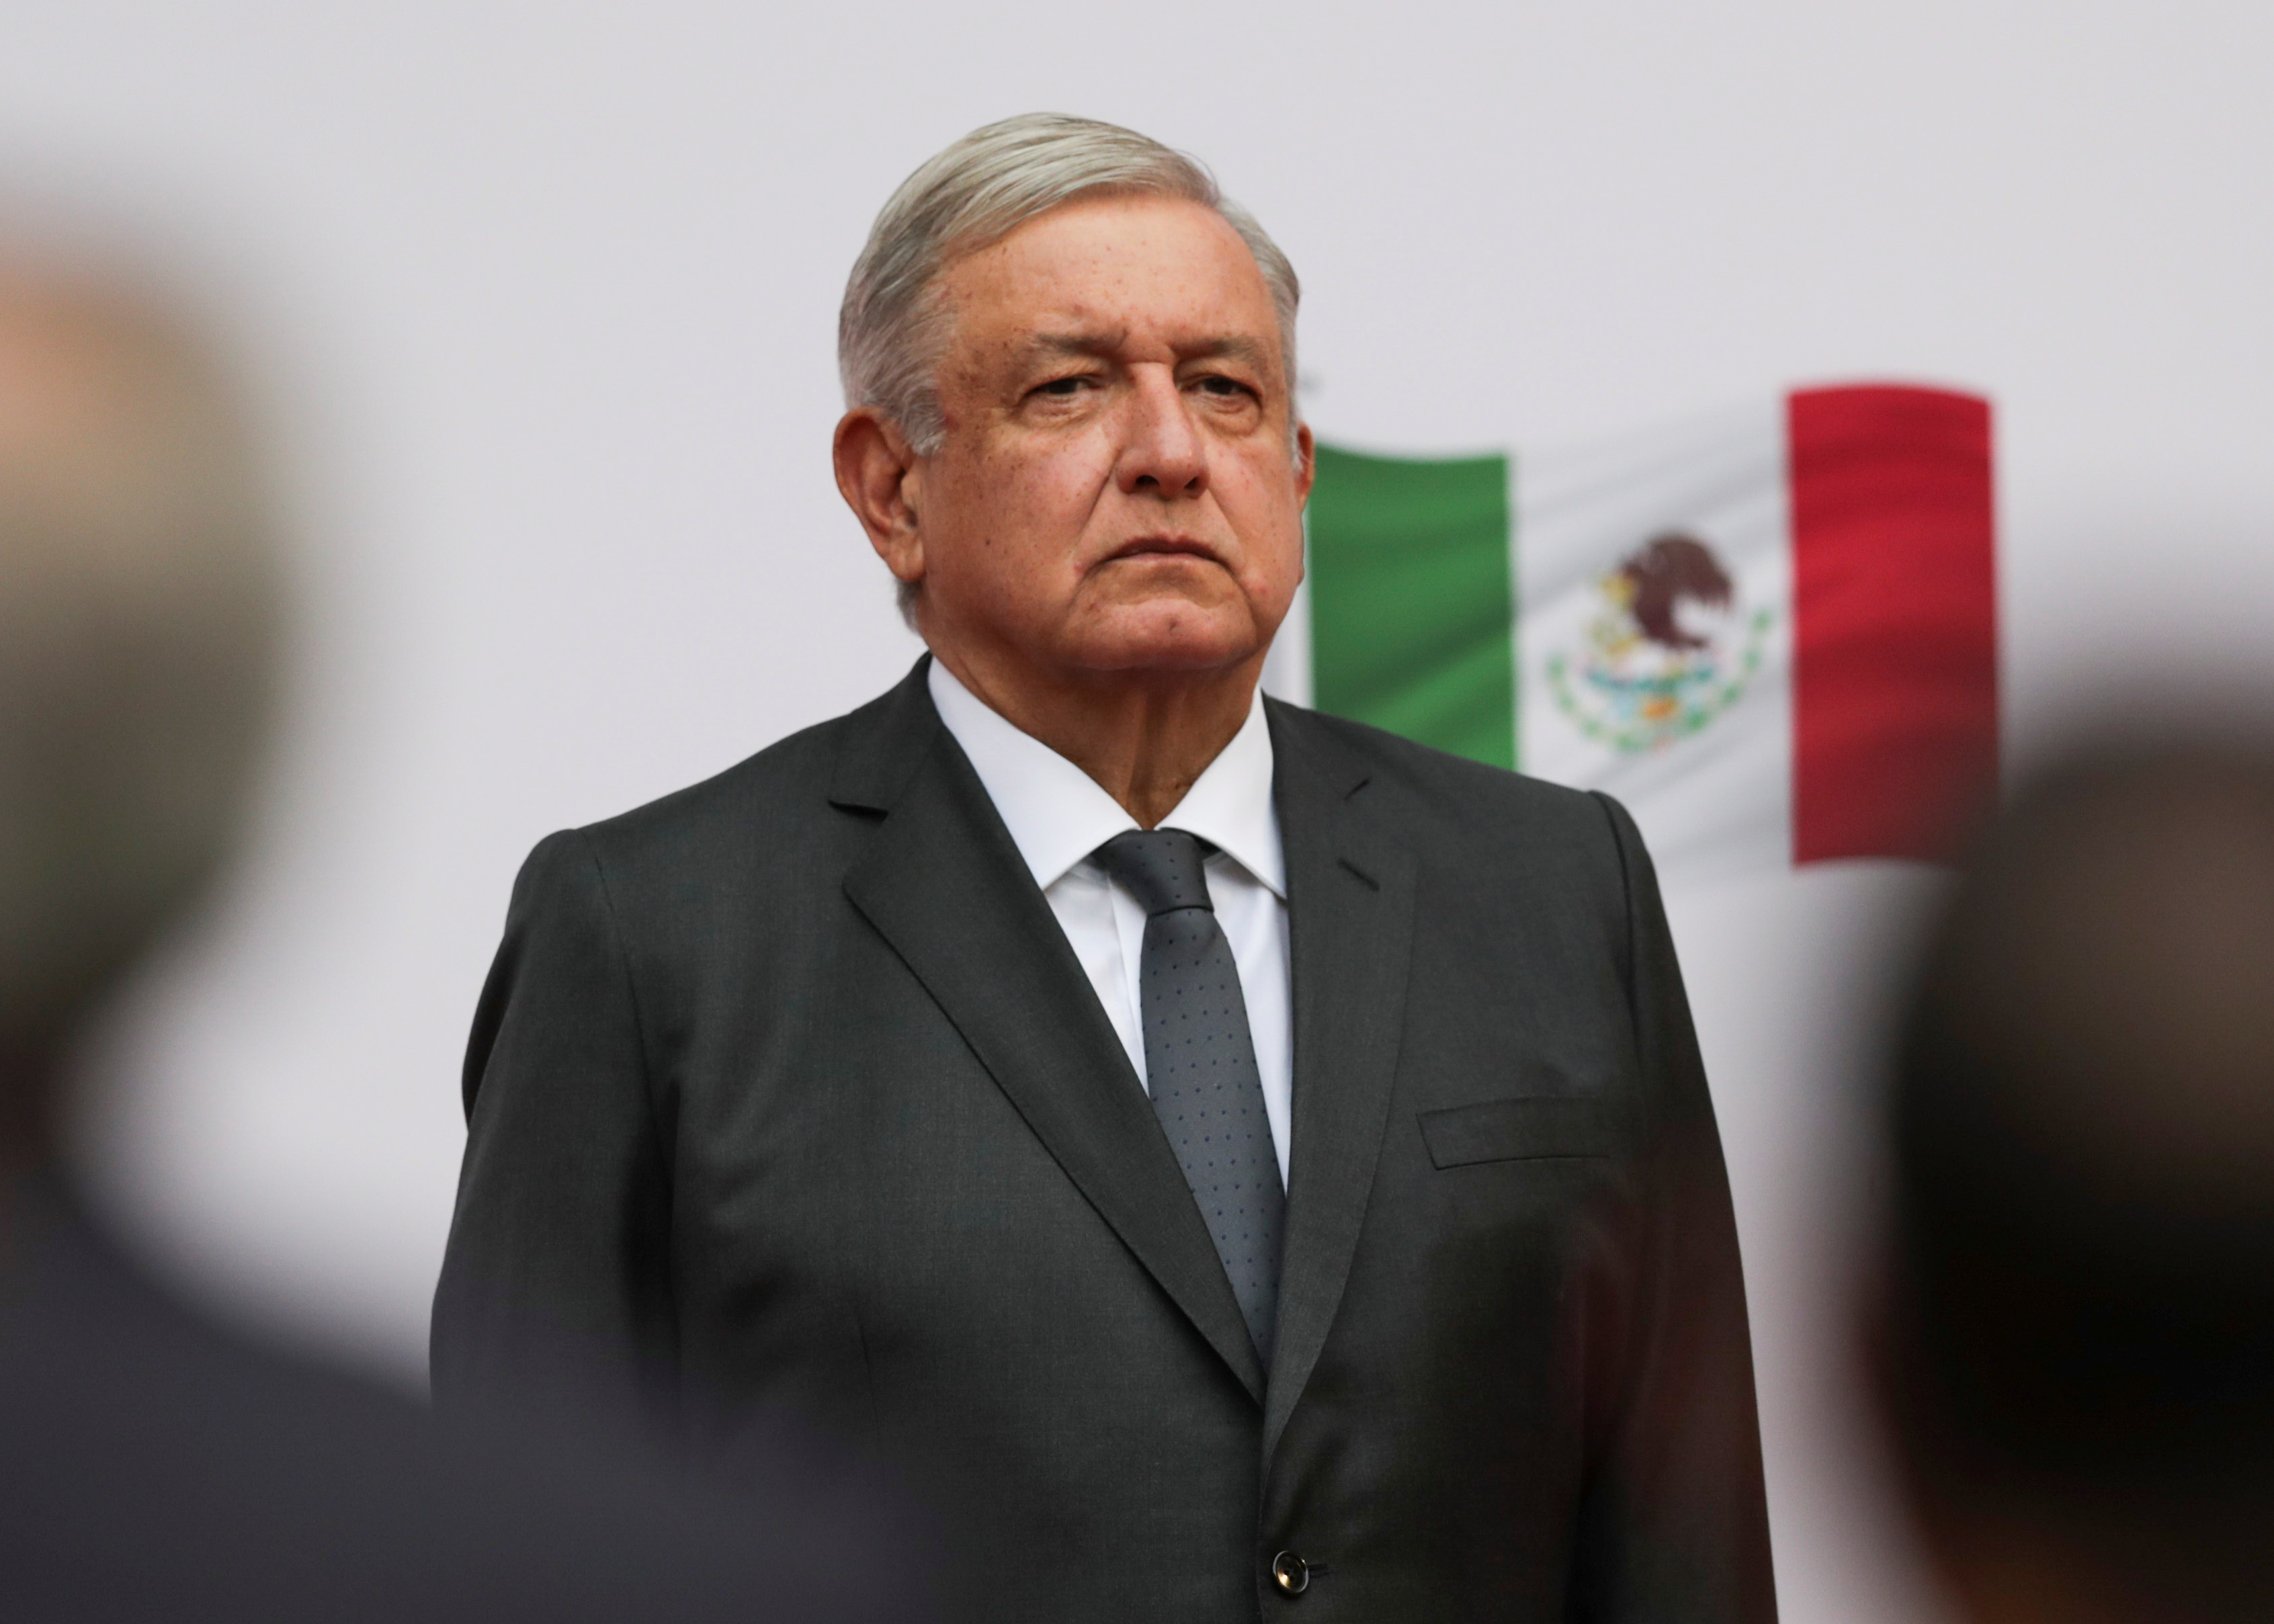 Mexico's President Andres Manuel Lopez Obrador listens to the national anthem as he arrives to address the nation on his second anniversary as President of Mexico, at the National Palace in Mexico City, Mexico, December 1, 2020. REUTERS/Henry Romero